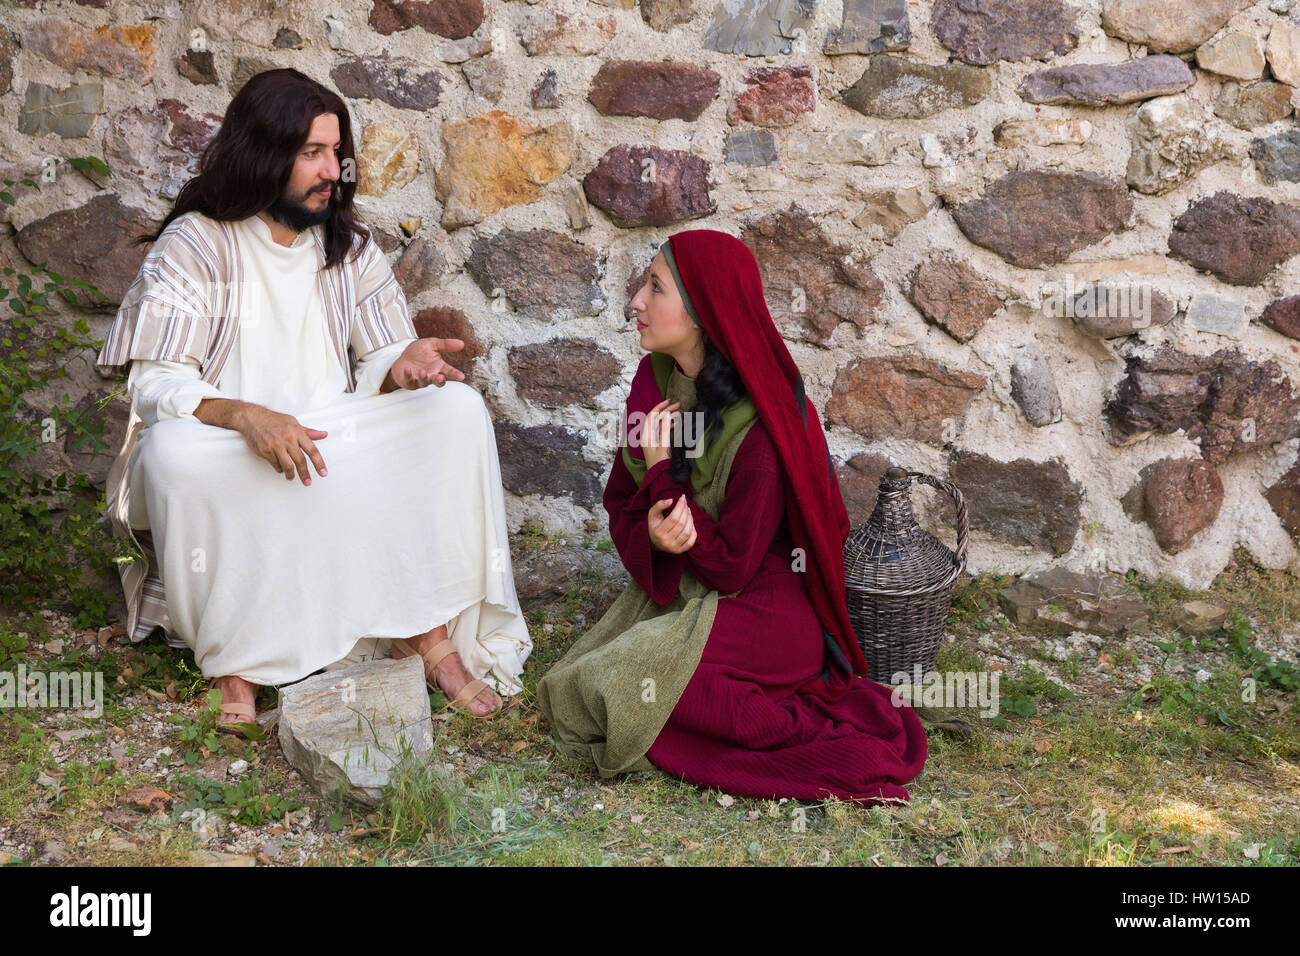 Repentant sinner woman asking for forgiveness and healing - Stock Image